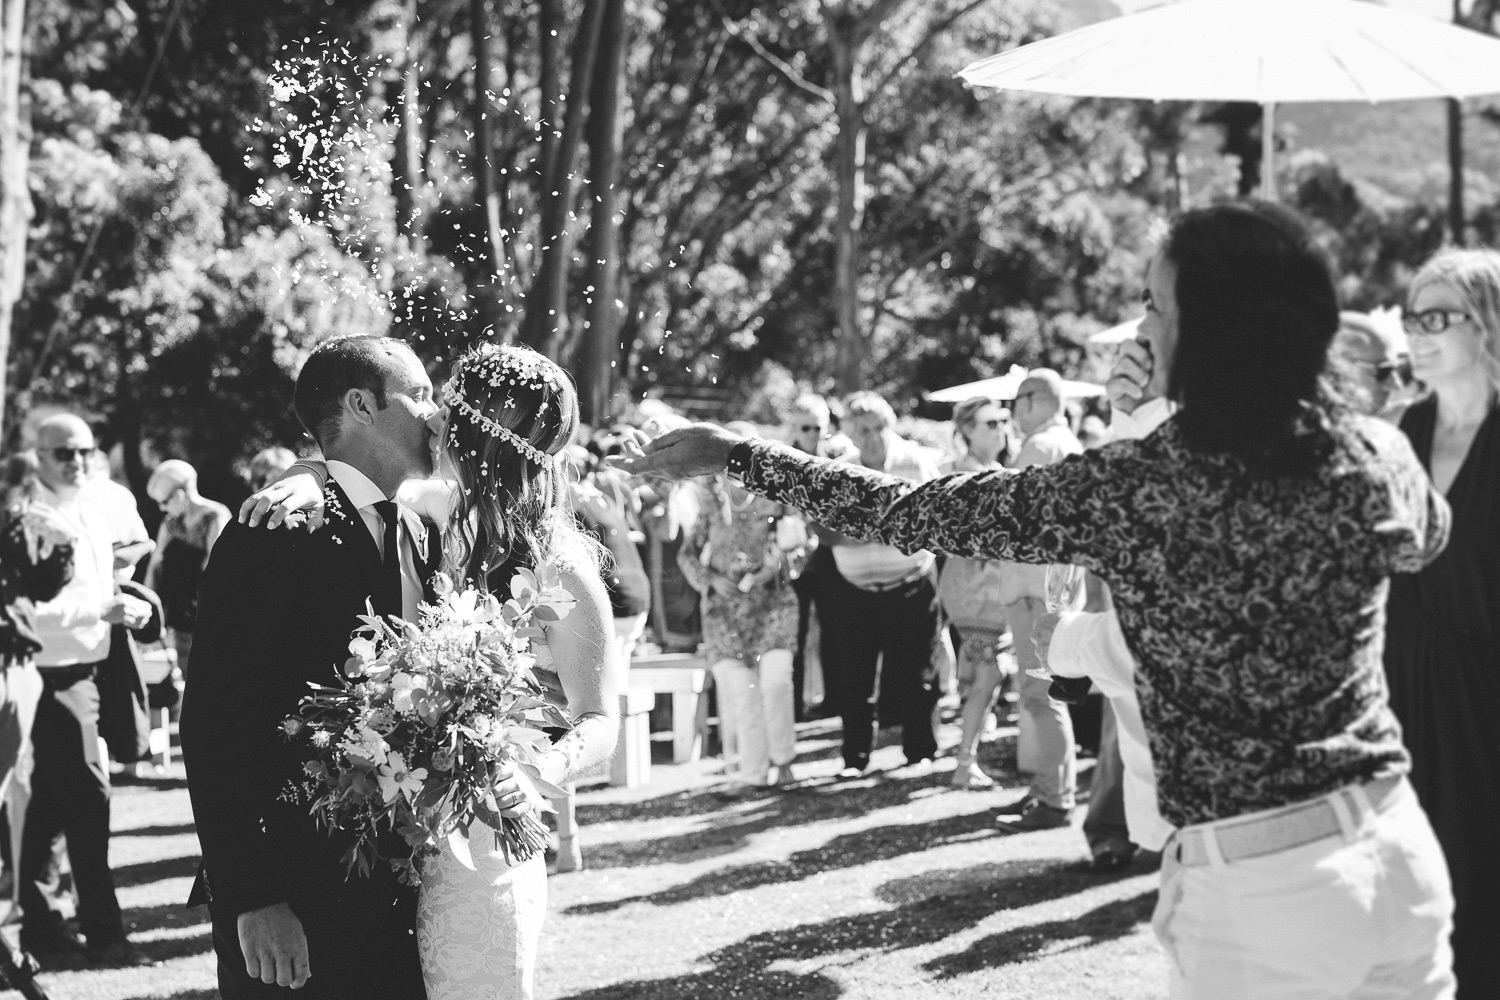 cape-town-wedding-photographer-western-cape-constansia-camilla-charlie-ray57.jpg